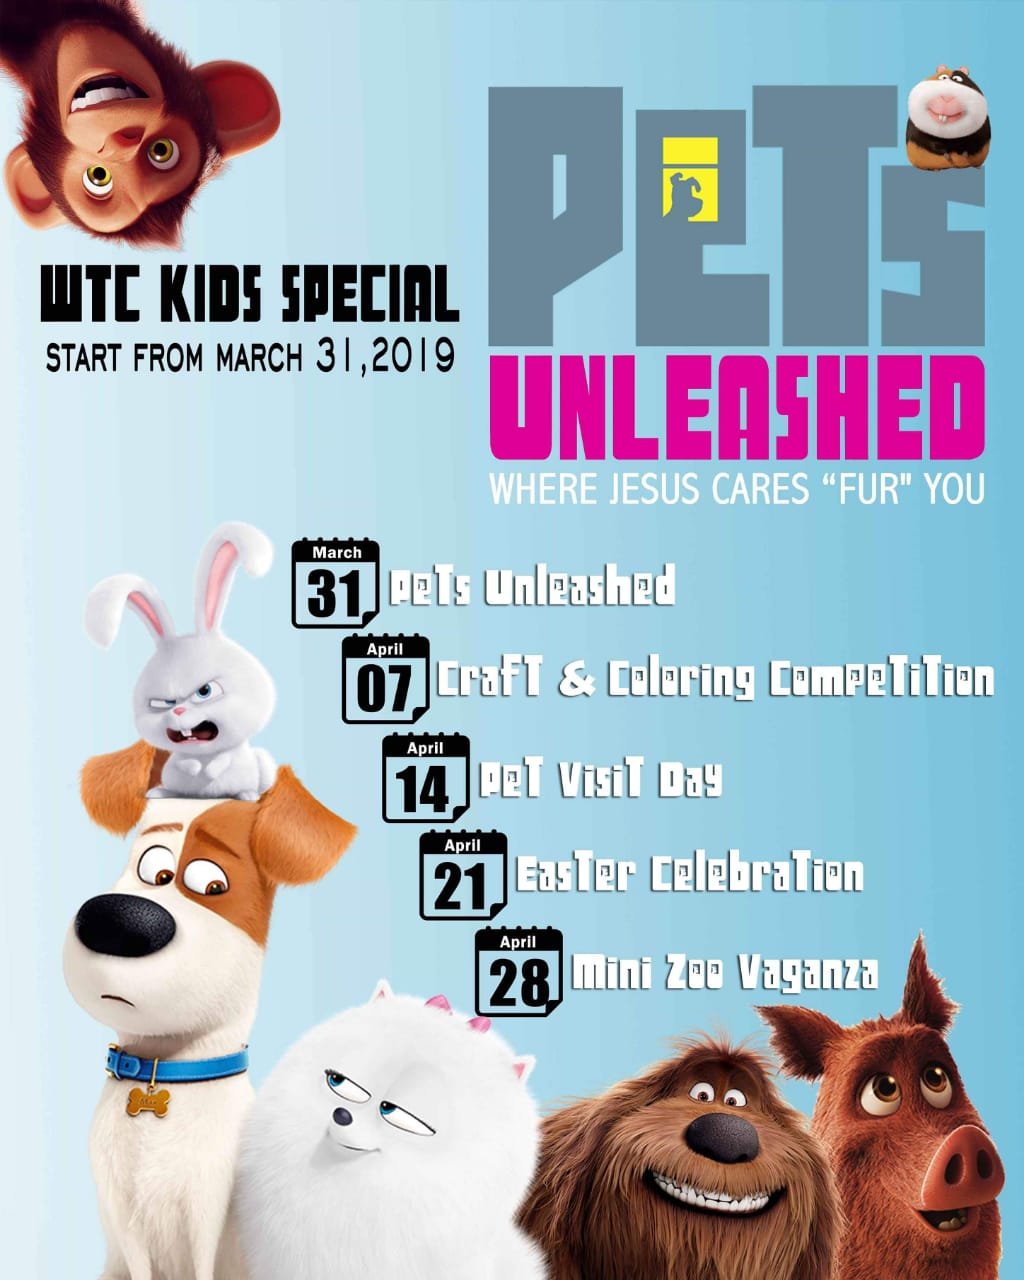 WTC KIDS SPECIAL EVENT